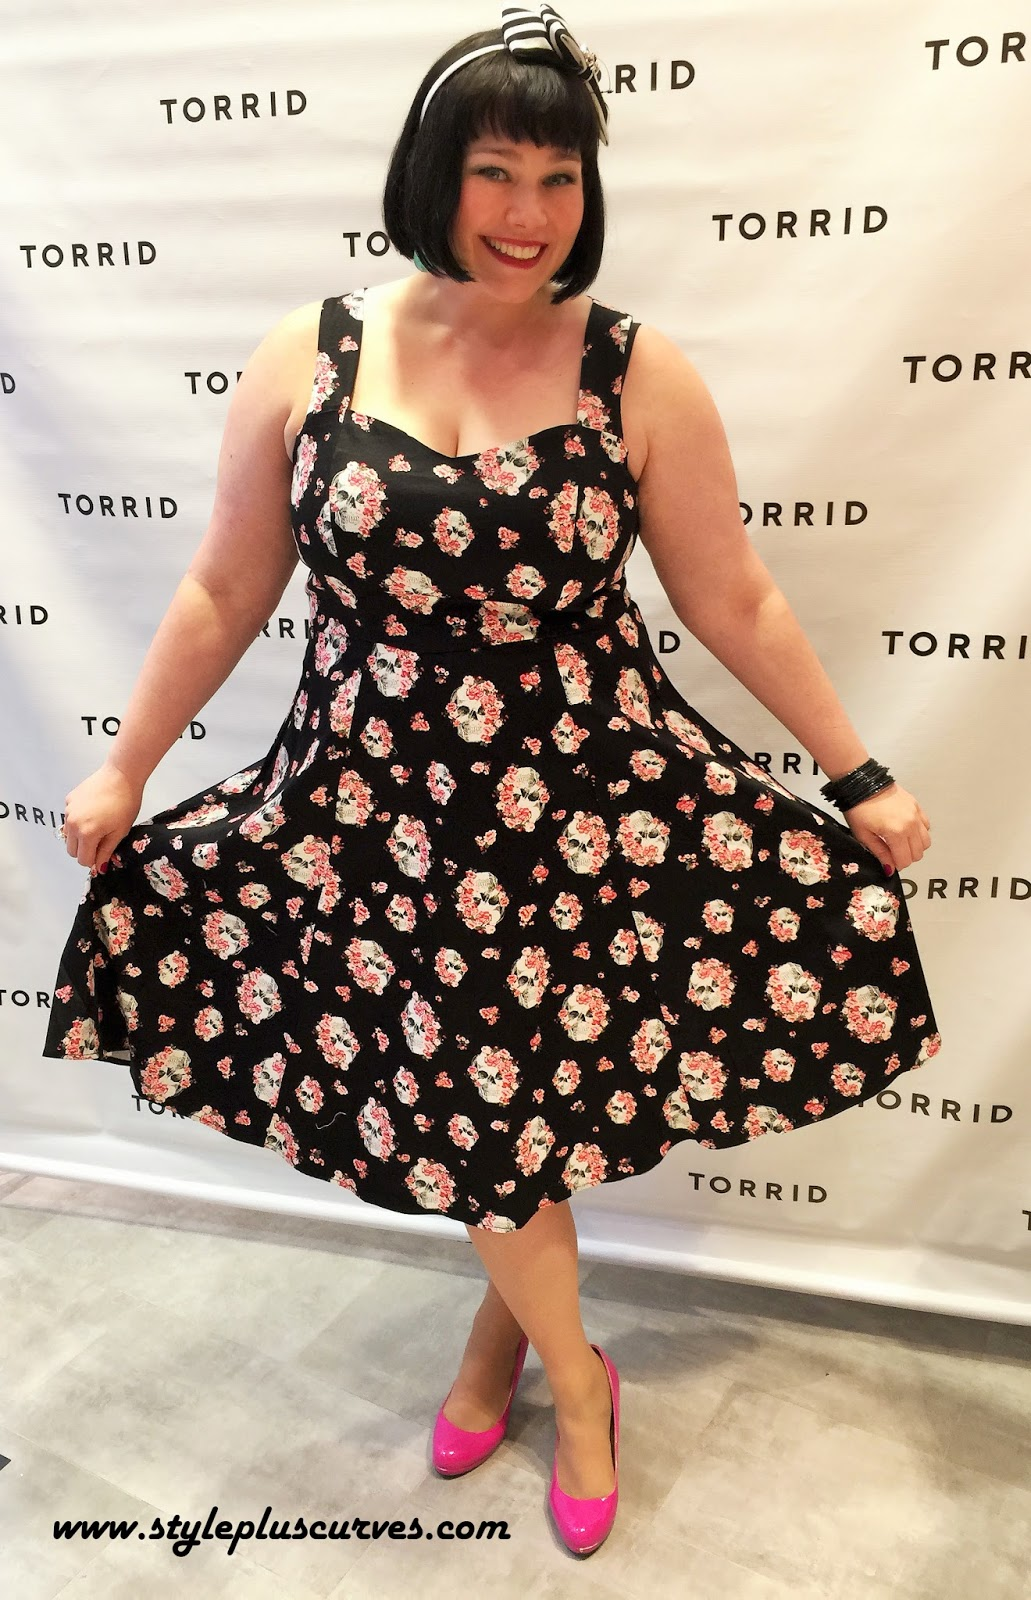 Amber from Style Plus Curves in the Floral Skull Swing Dress from Torrid at the Chicago Opening